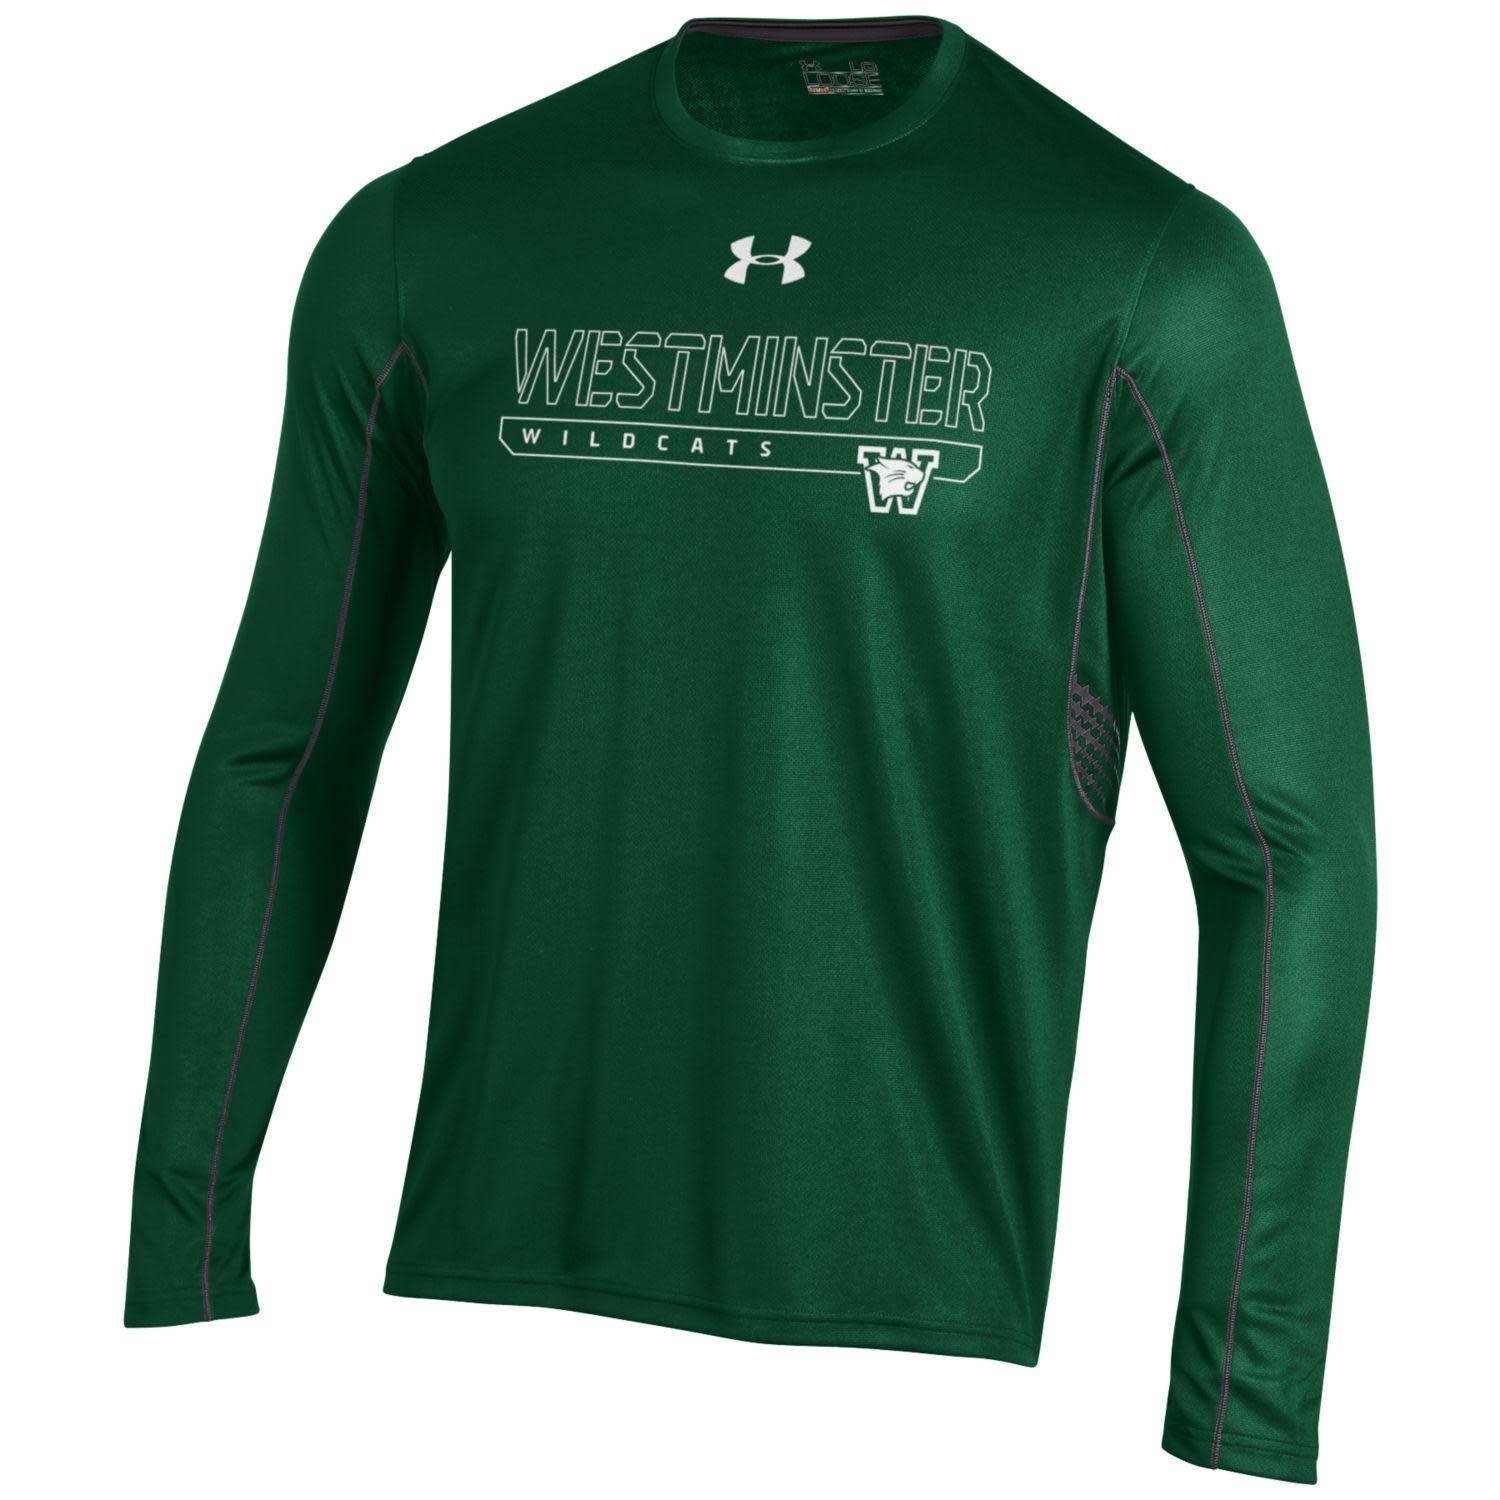 Under Armour T: UA Dri-fit Long Sleeve Forest w/gray stripes, w/white West Wildcats, gray design on sides